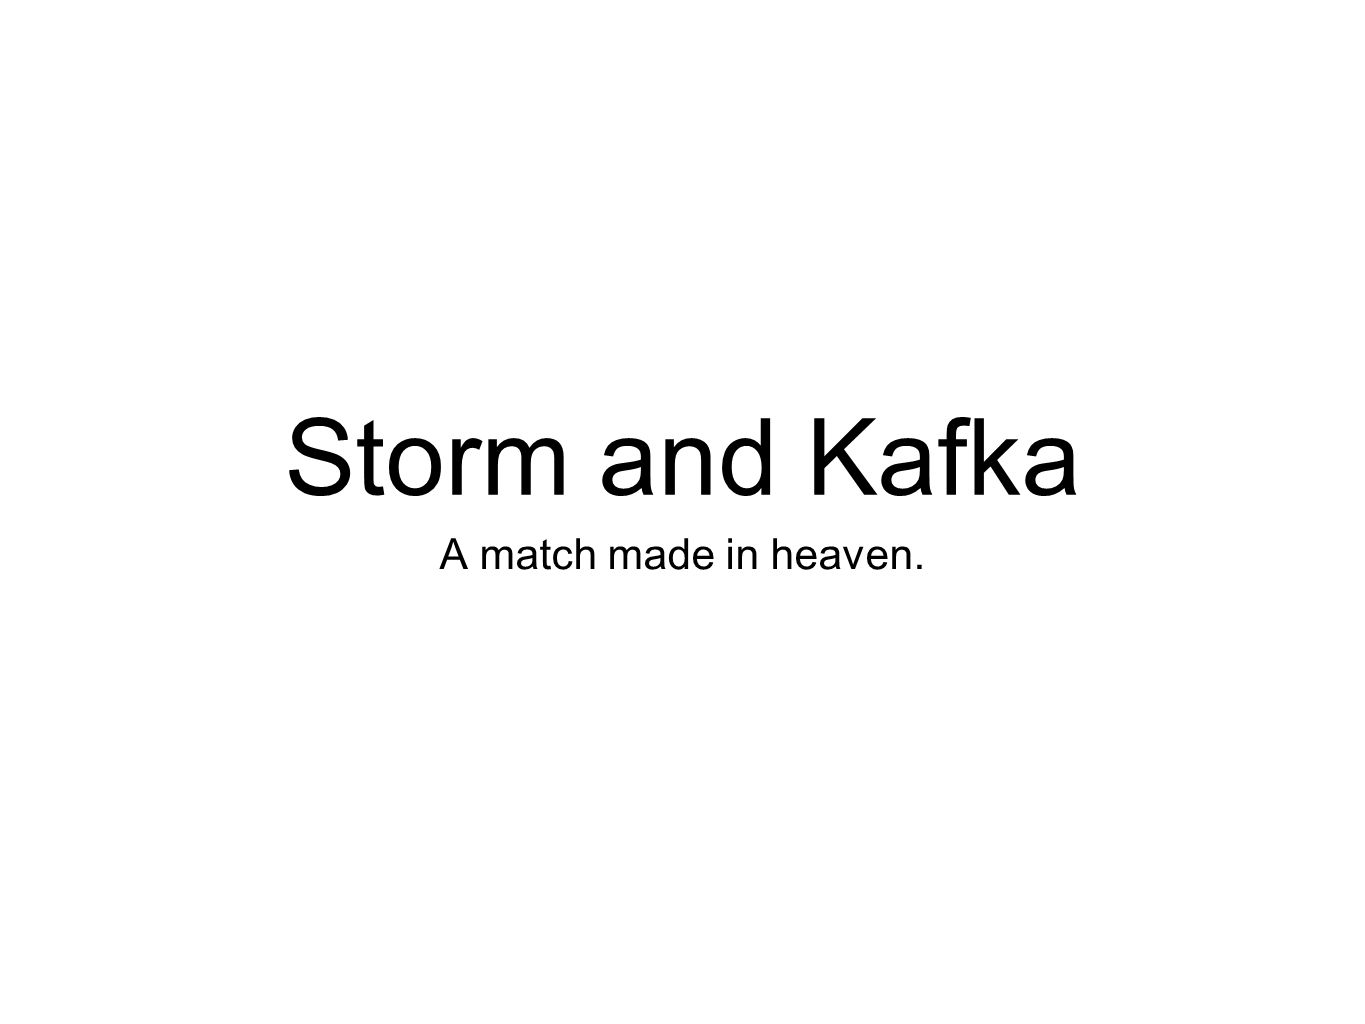 Storm and Kafka A match made in heaven.